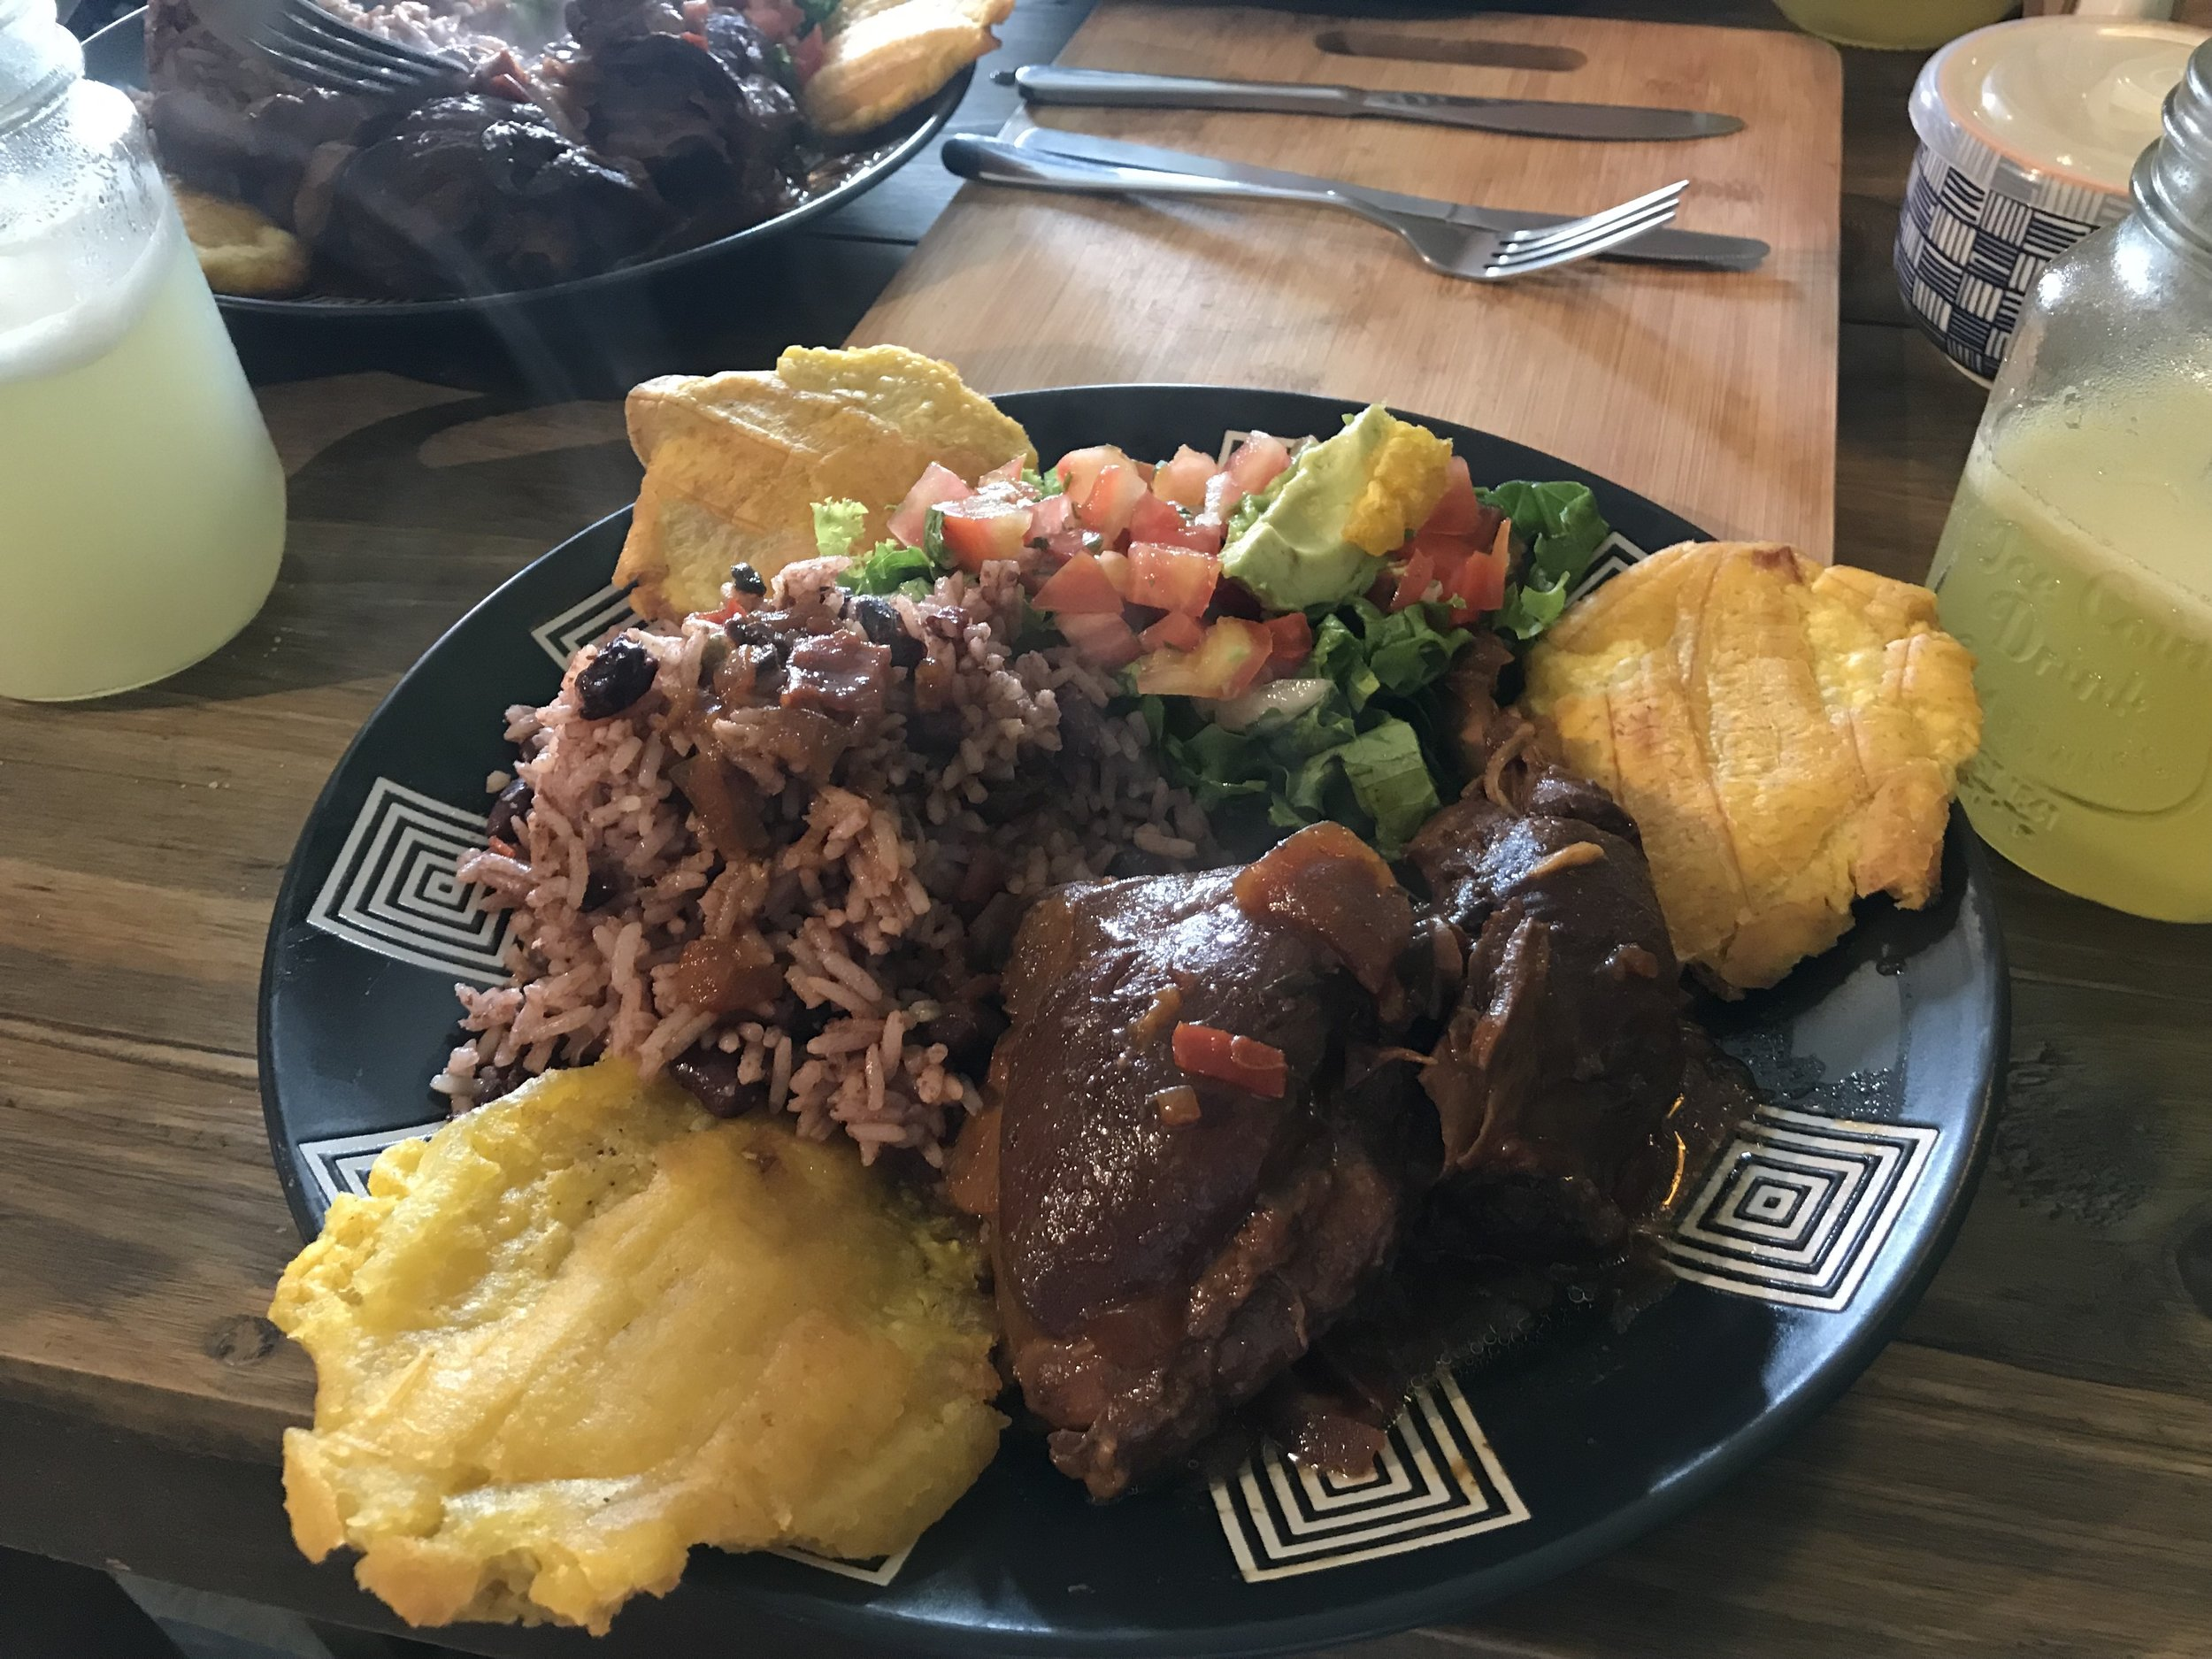 I considered Costa Rican cooking very similar to Italian cooking in that it is peasant food that uses fresh ingredients, simply cooked. Also, don't compare it to Mexican food. Costa Rican food is not spicy at all.